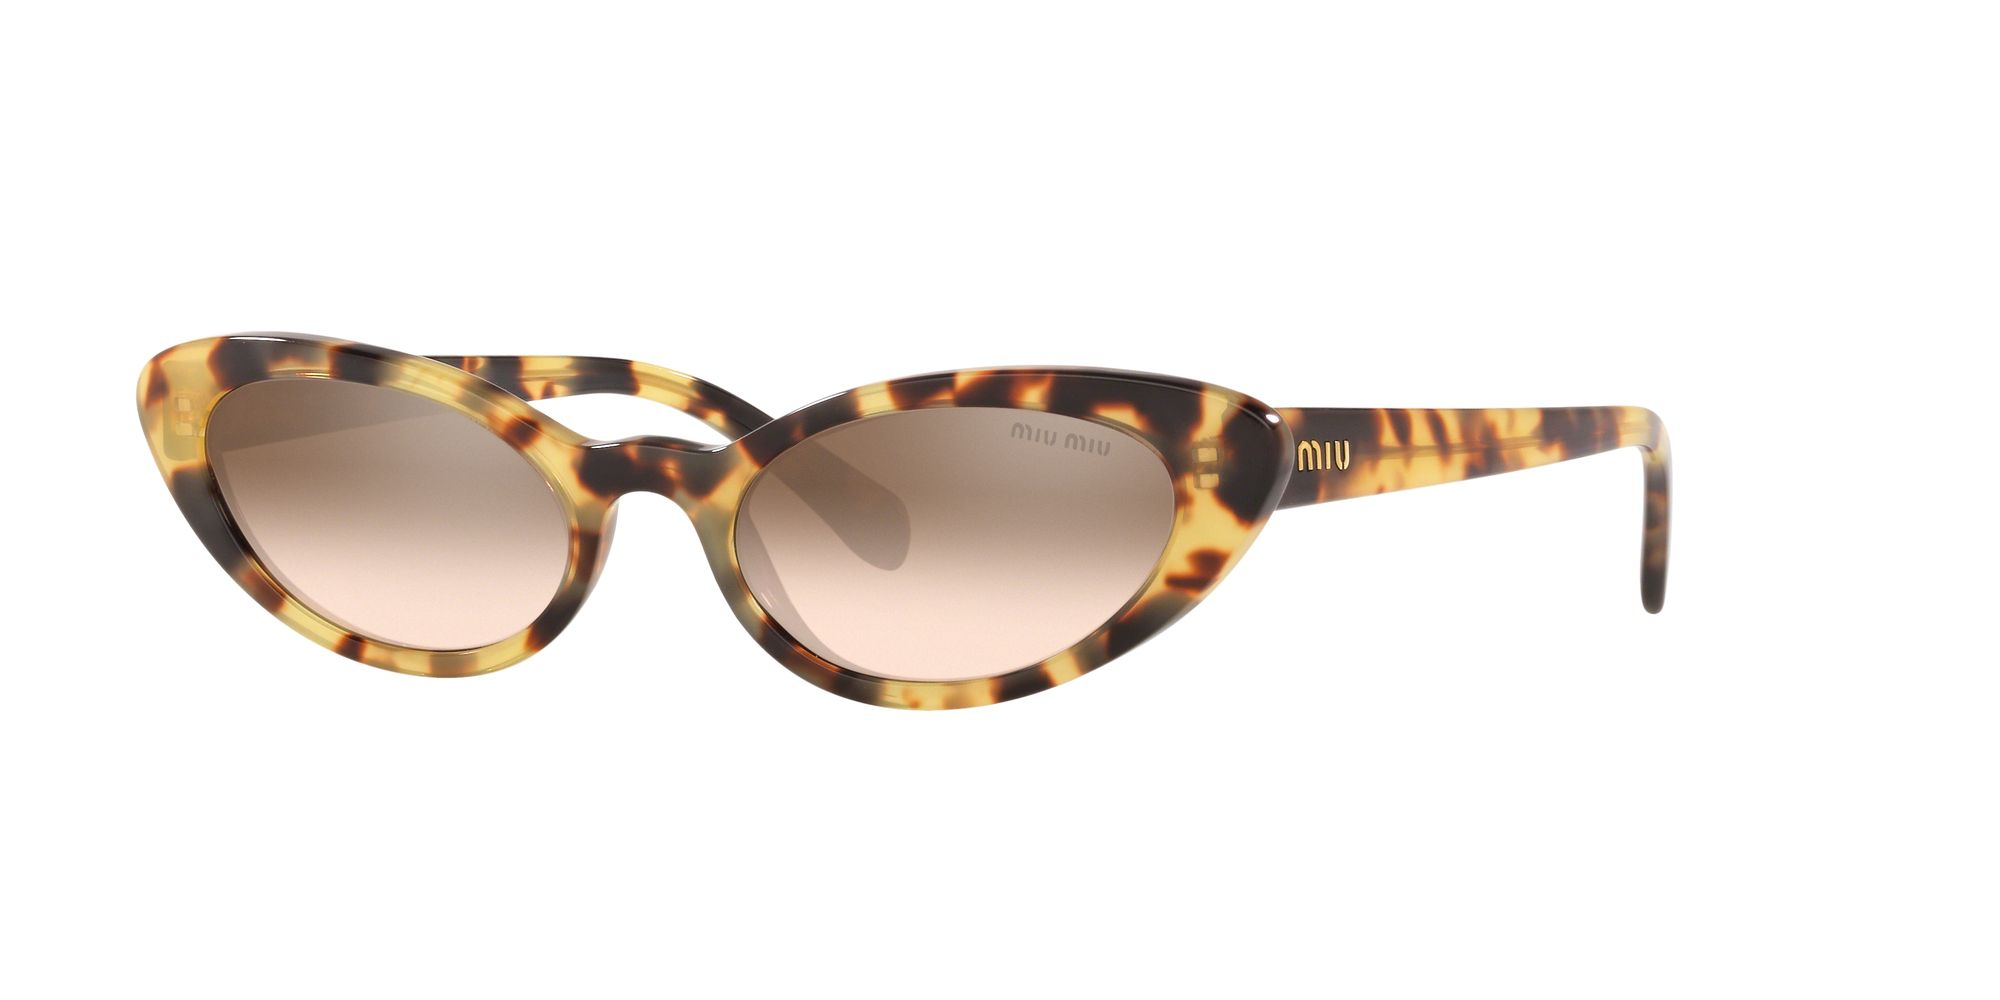 Miu Miu Miu Miu MU 09US Women's Stud Cat's Eye Sunglasses, Light Brown